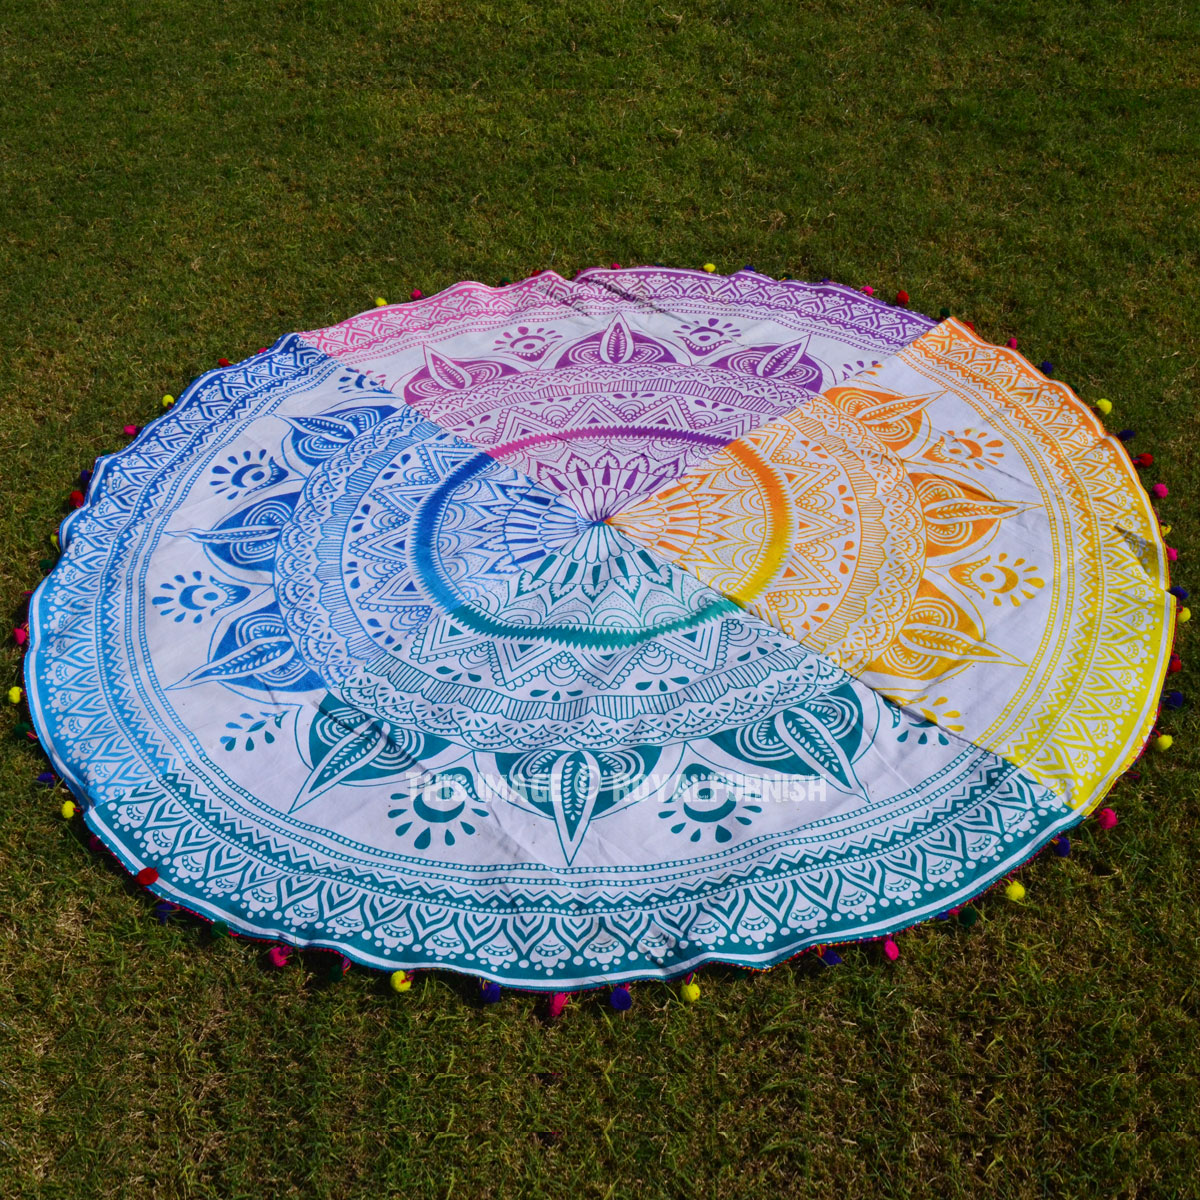 Colorful Pom Pom Ombre Round Mandala Beach Towel